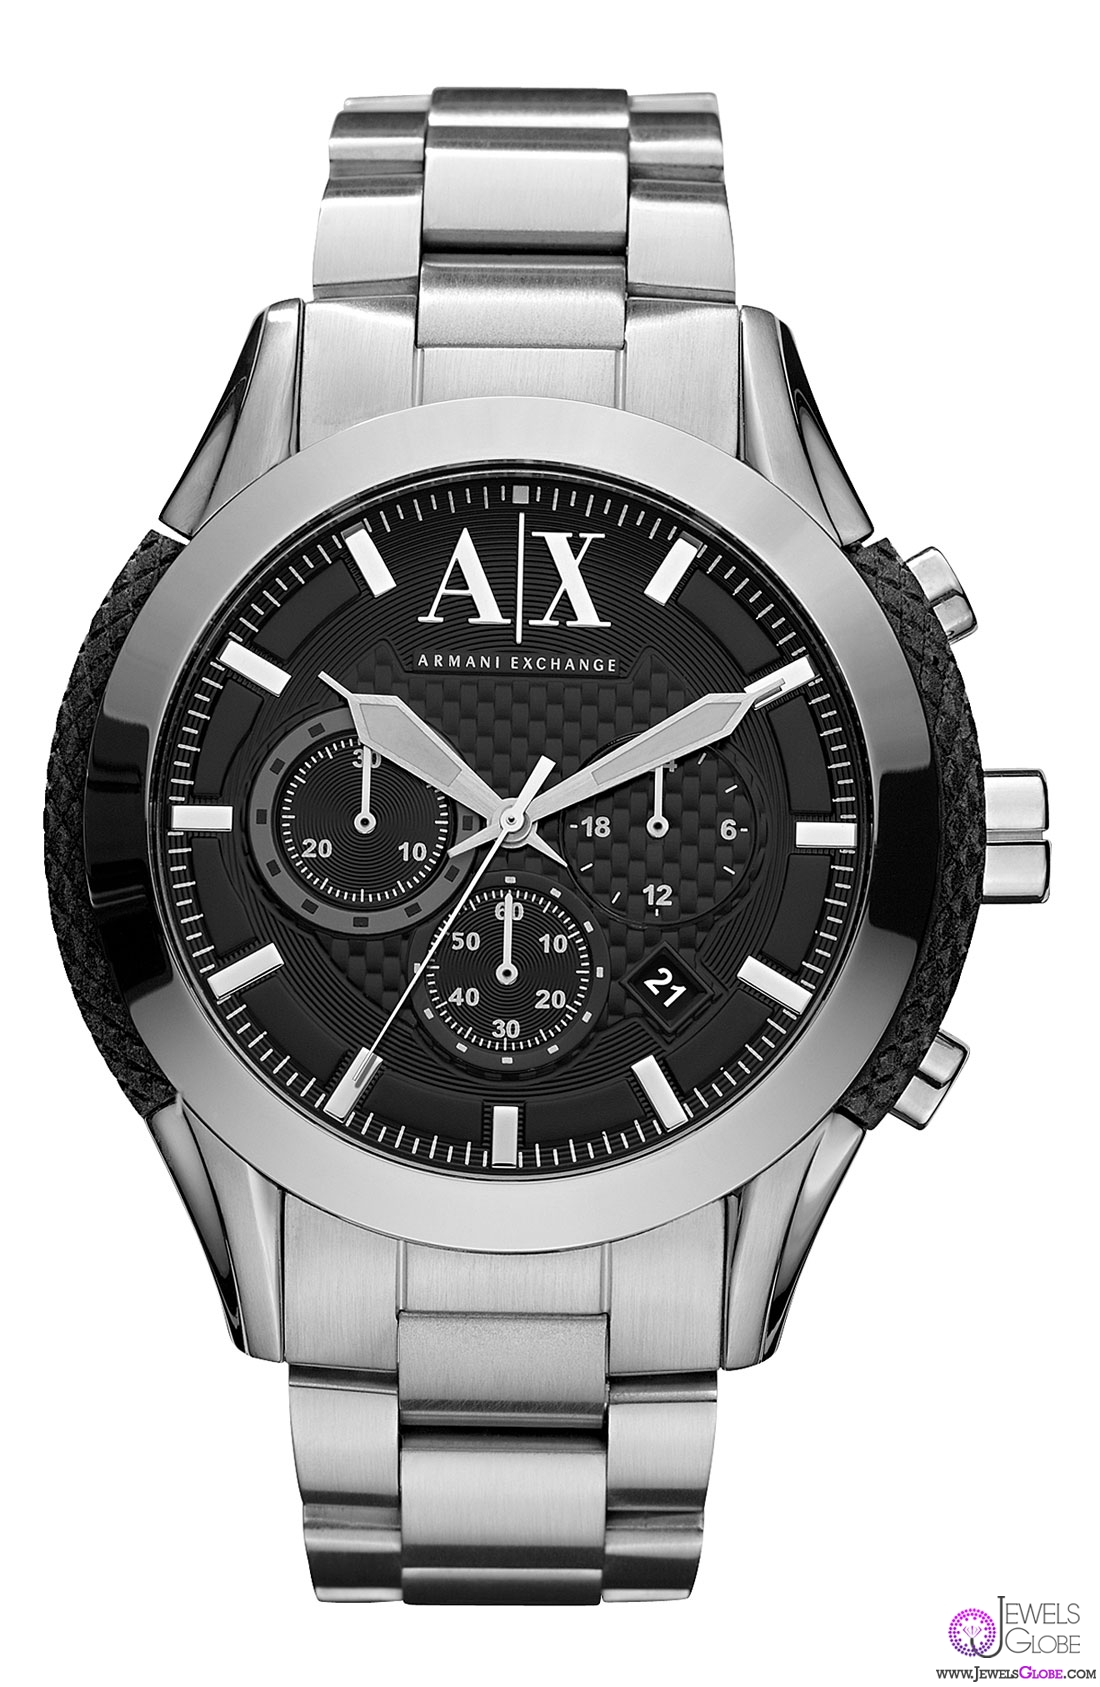 Armani-Men-Watches-2012 21 Most Stylish Armani Watches For Men